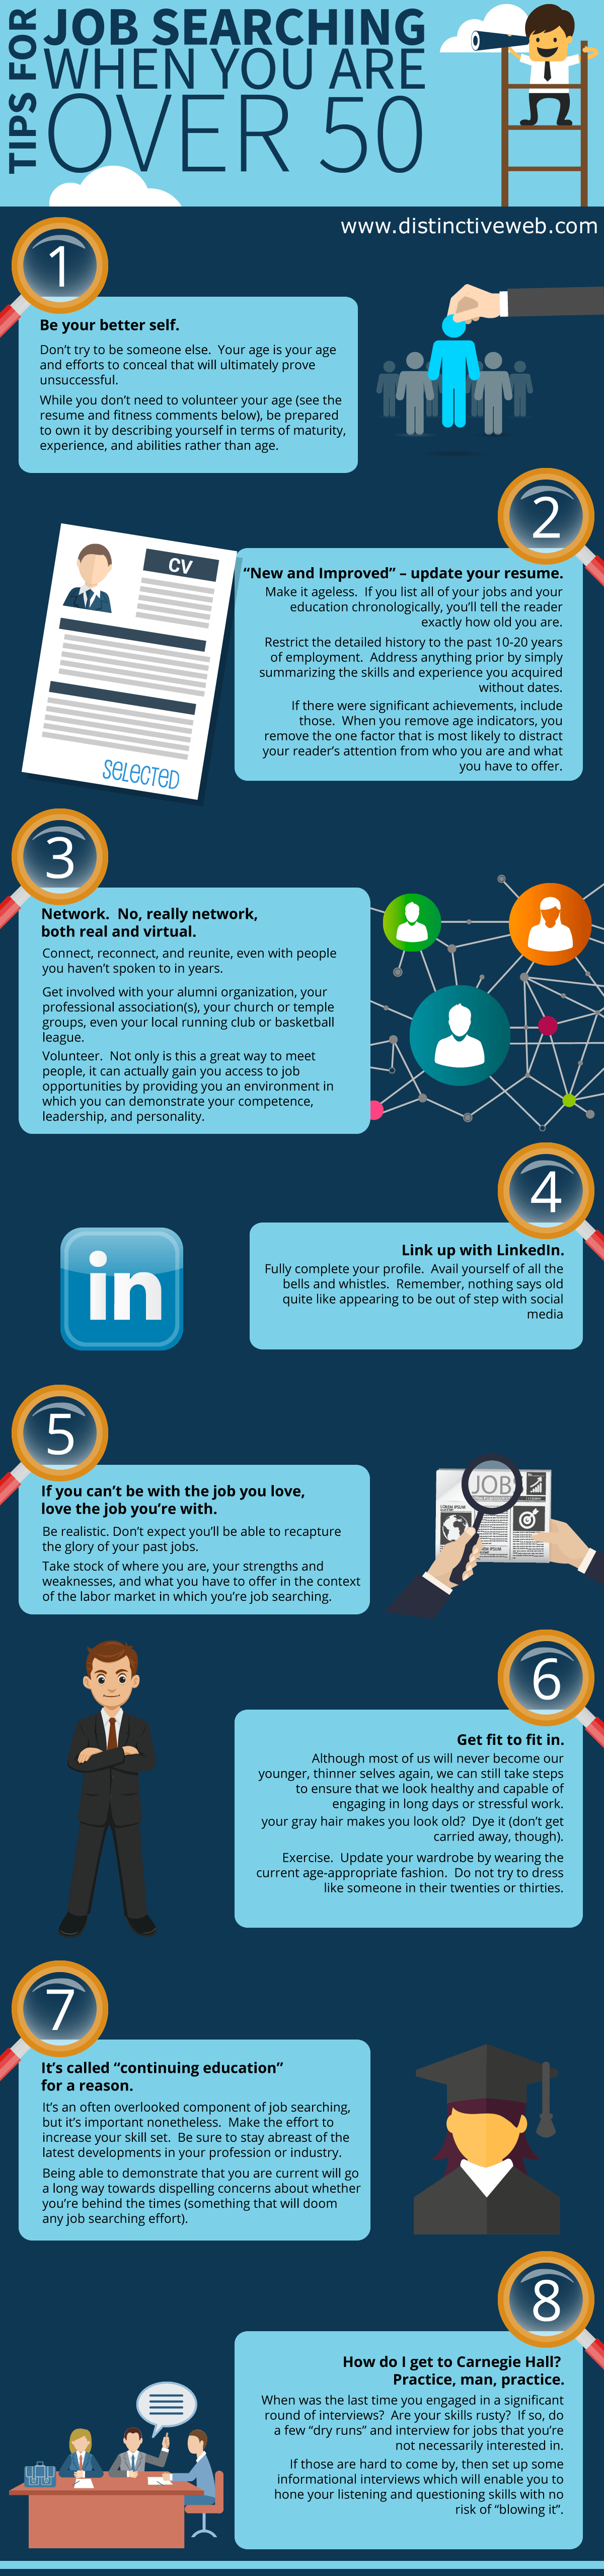 Jobs over 50 infographic